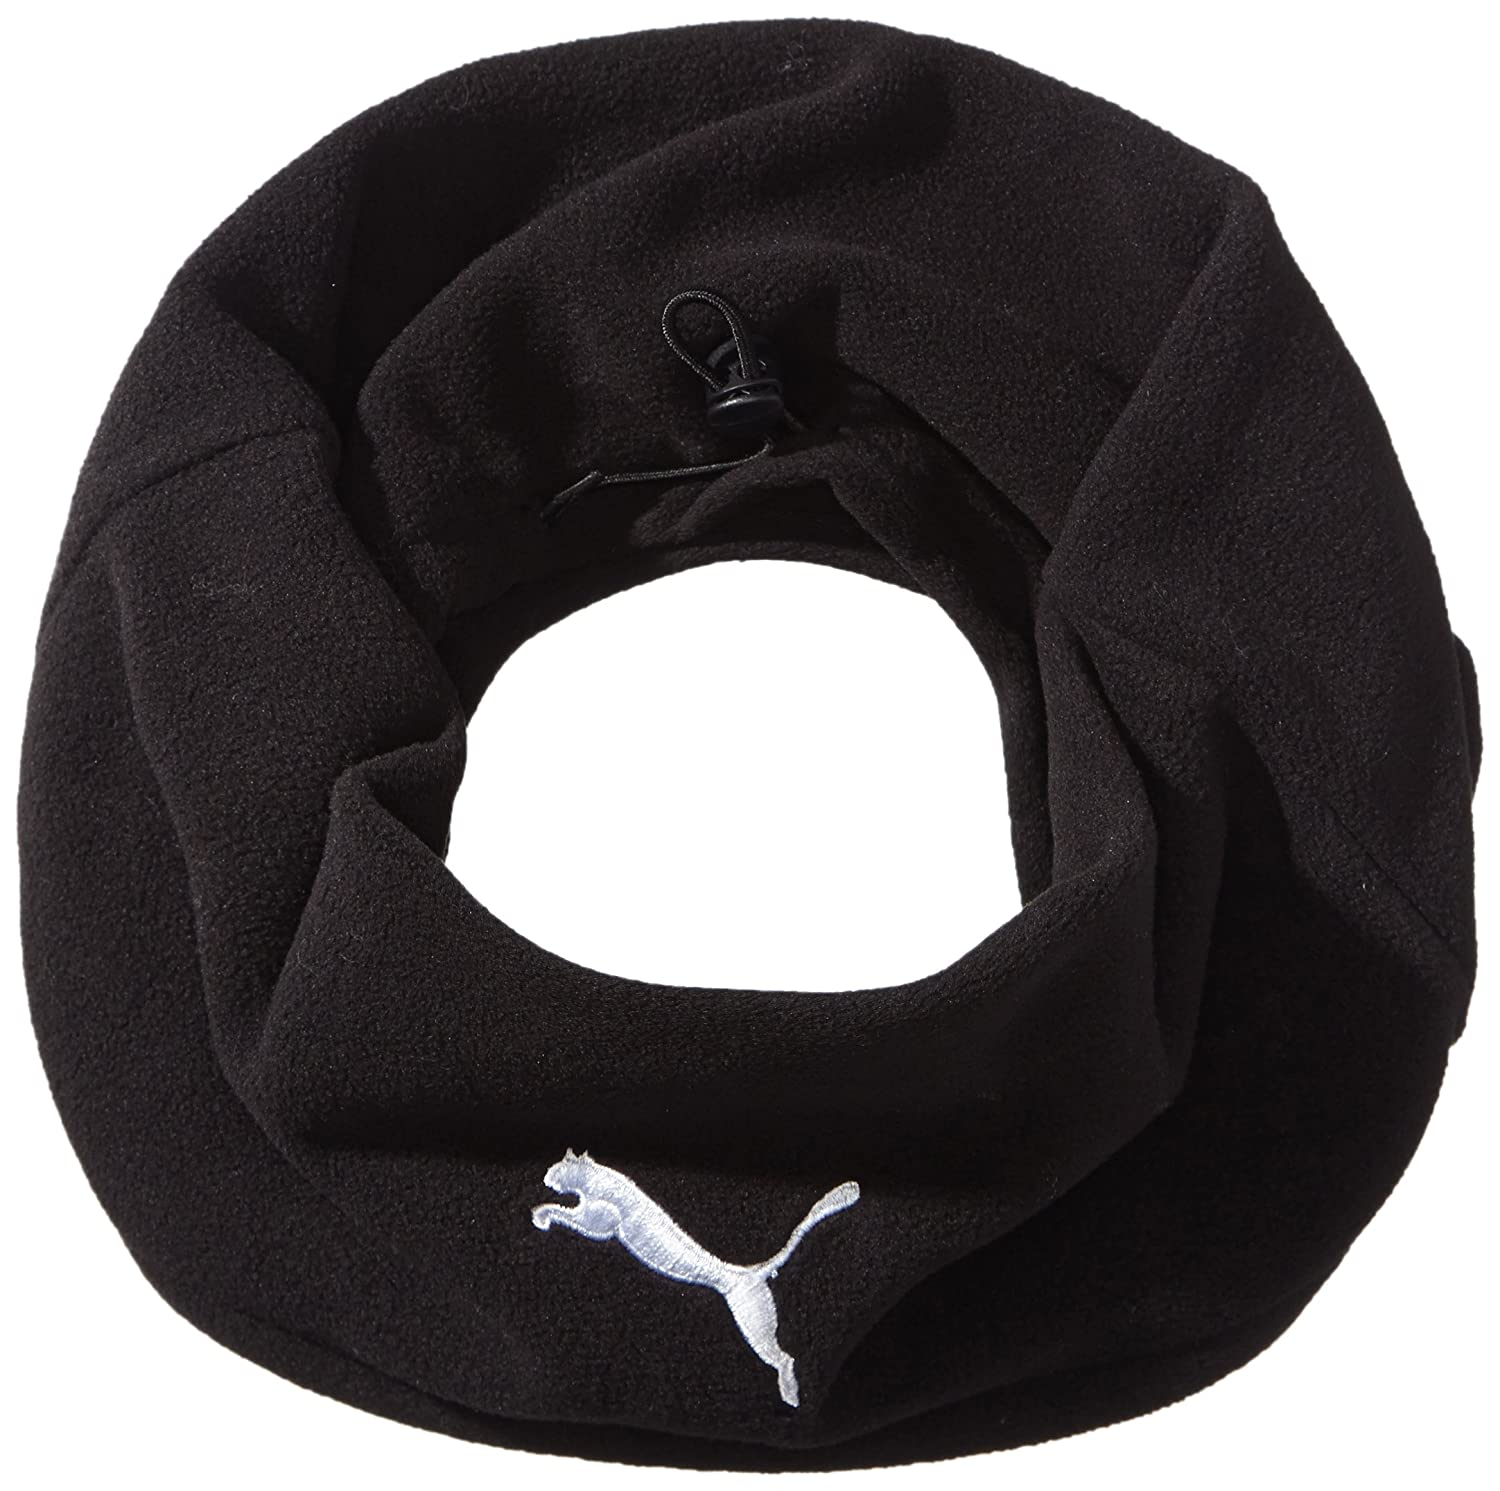 Puma Neck warmer II - black Puma Schal Neck warmer II One Size 052212 02